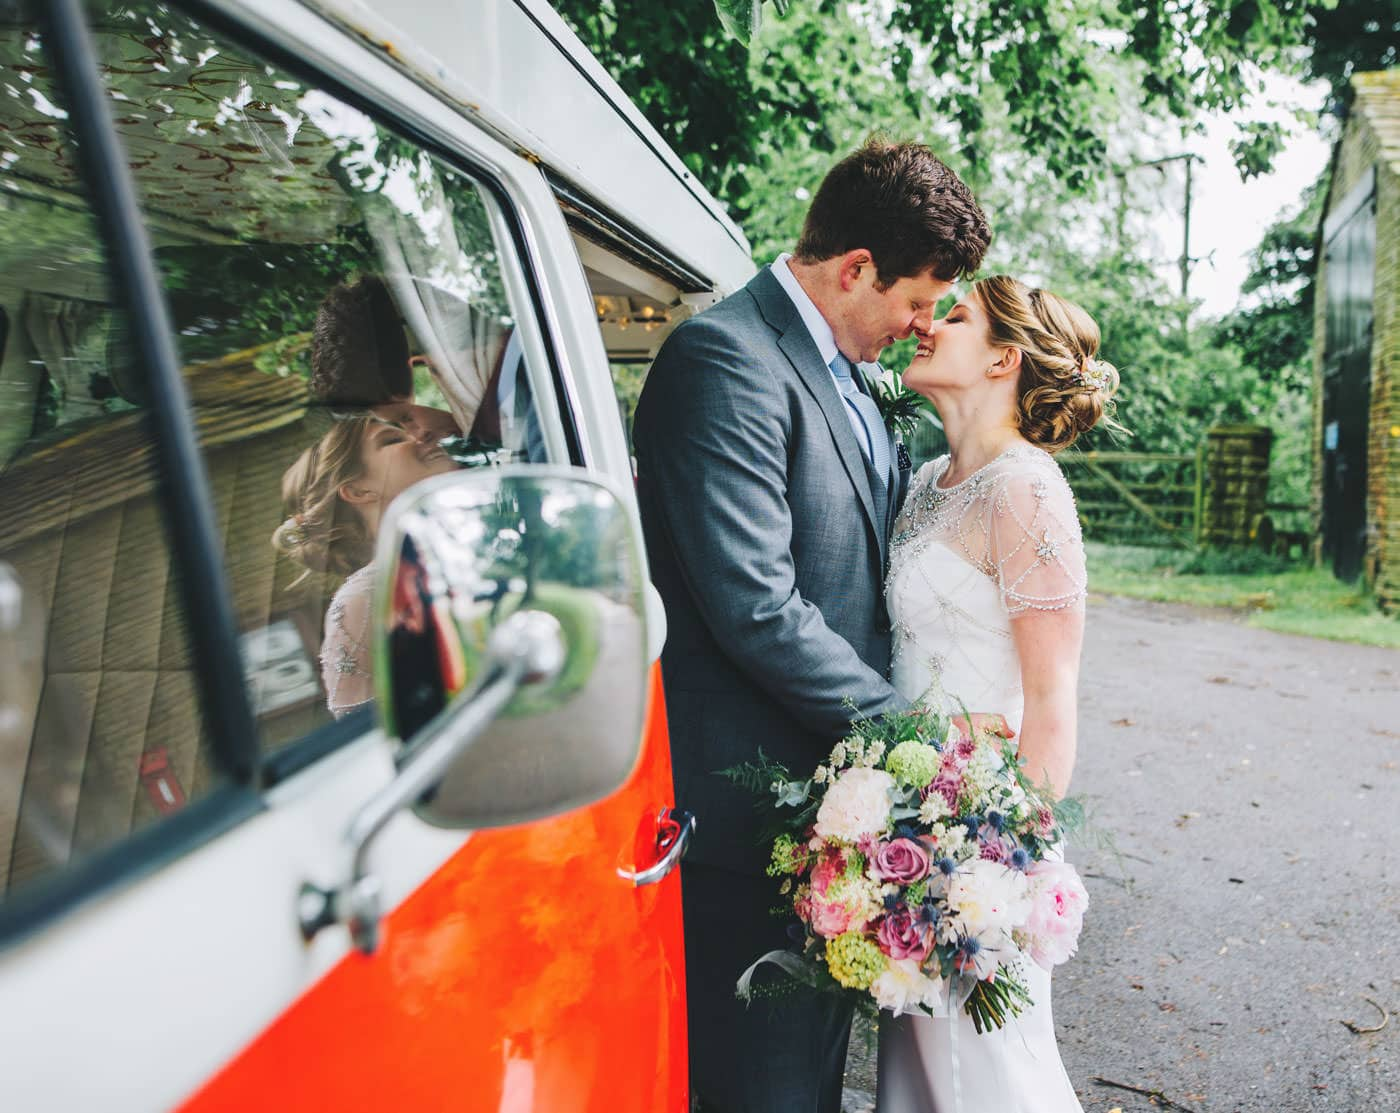 vintage camper van wedding pictures